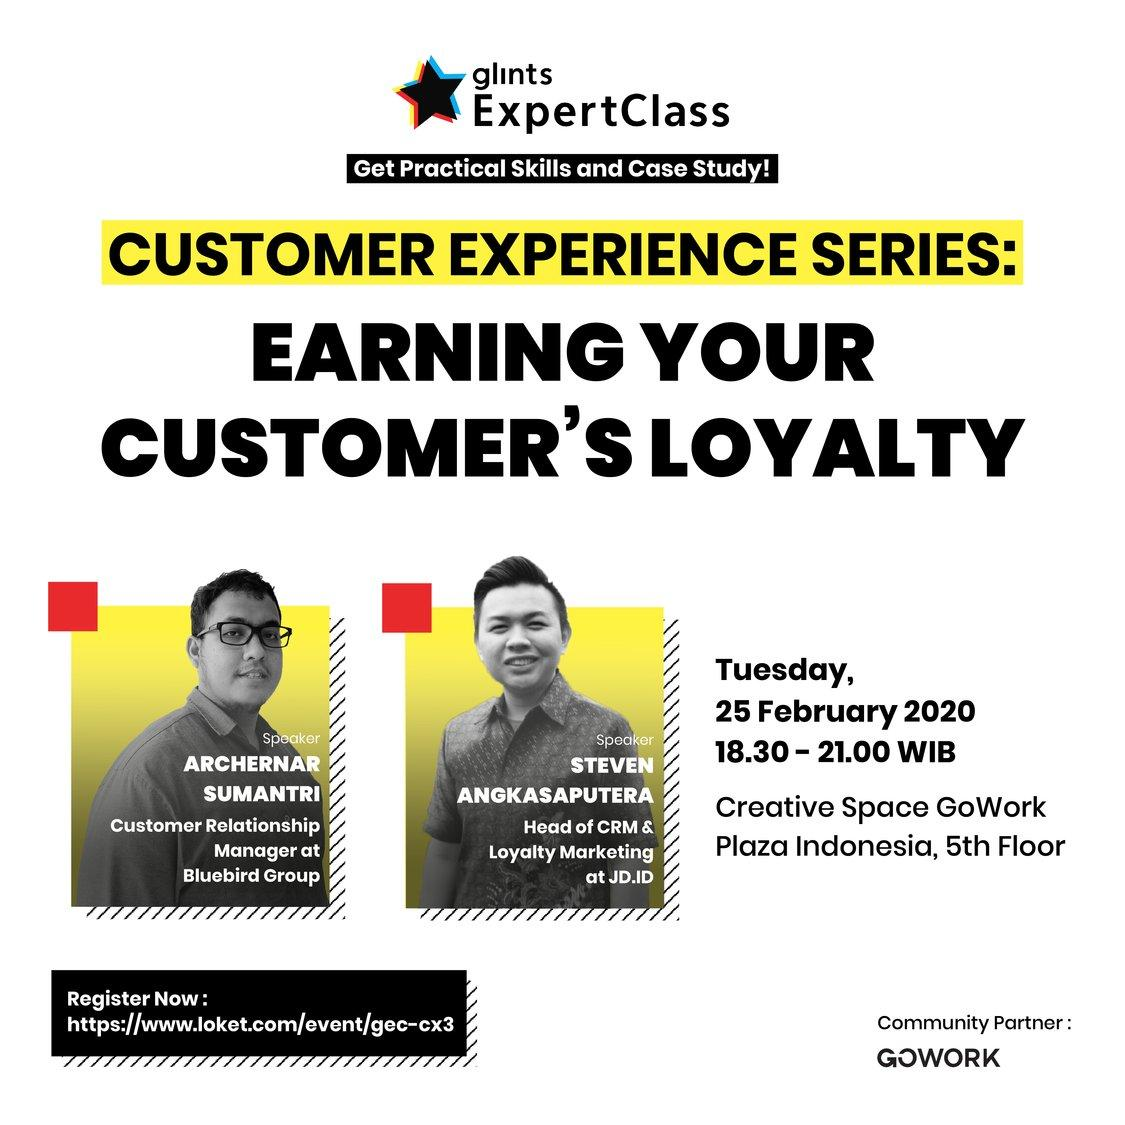 Glints Expert Class - Customer Experience Series : Earning Your Customer's Loyalty